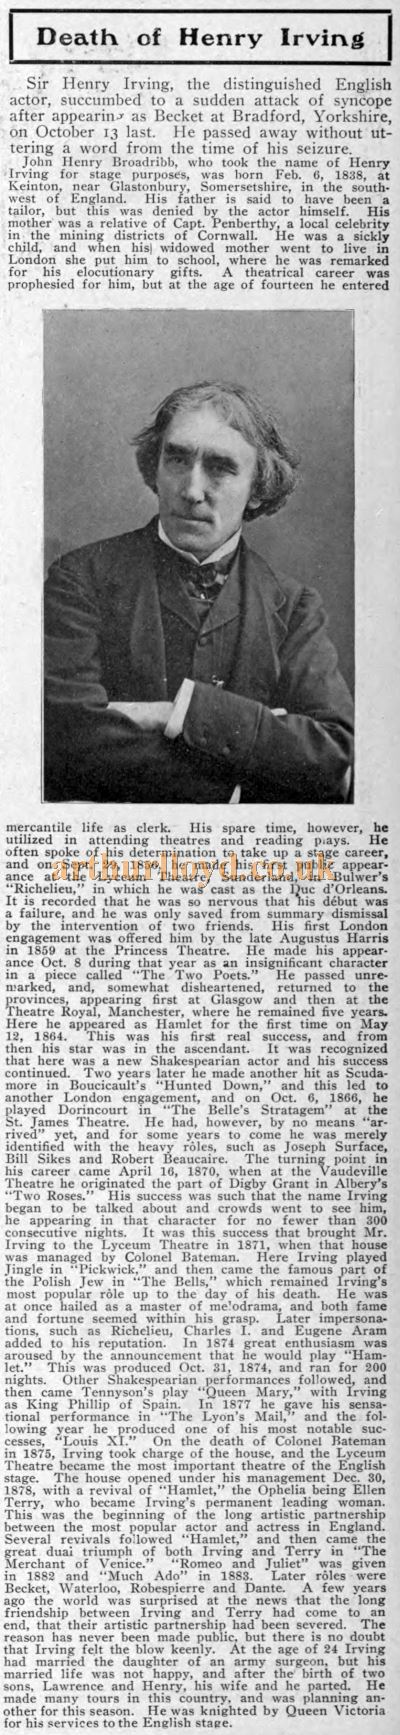 Sir Henry Irving's Obituary 1, Obituary 2, Funeral